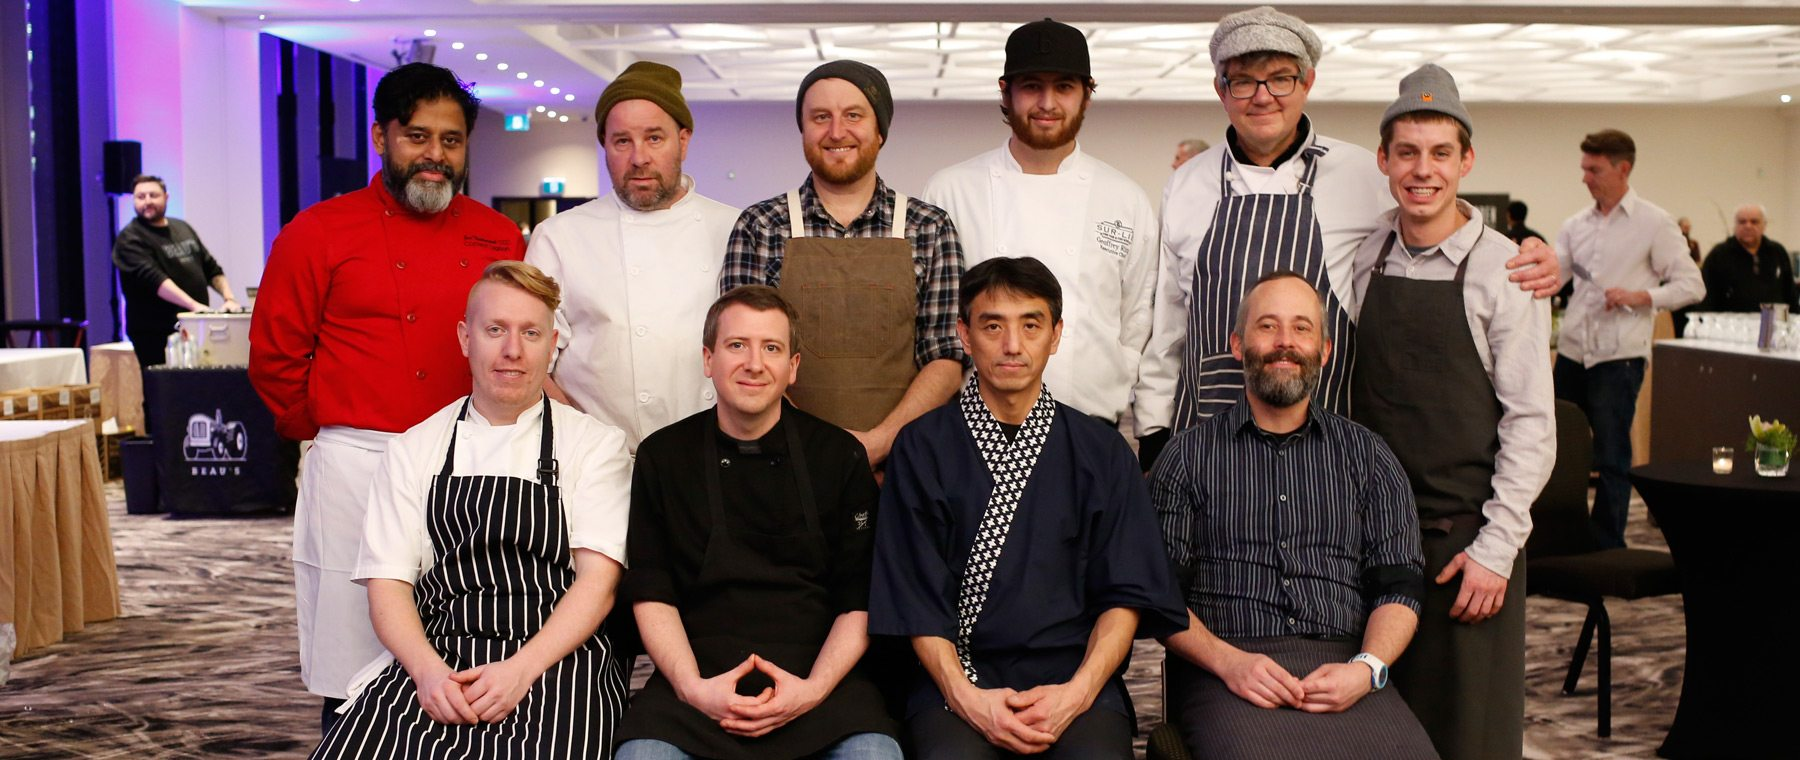 Top Row, left: Joe Thottungal (Coconut Lagoon), Patrick Garland (Absinthe), Michael Radford (Whalesbone), (Sur-Lie) , Charles Part and Yanick Lasalle (Les Fougeres). Bottom Row, left: Simon Fraser (Fraser Cafe), XXX, Moriyuki Hiroha (C'est Japon a Suisha), Scott Adams (Benny's Bistro). Photo: David Kawai